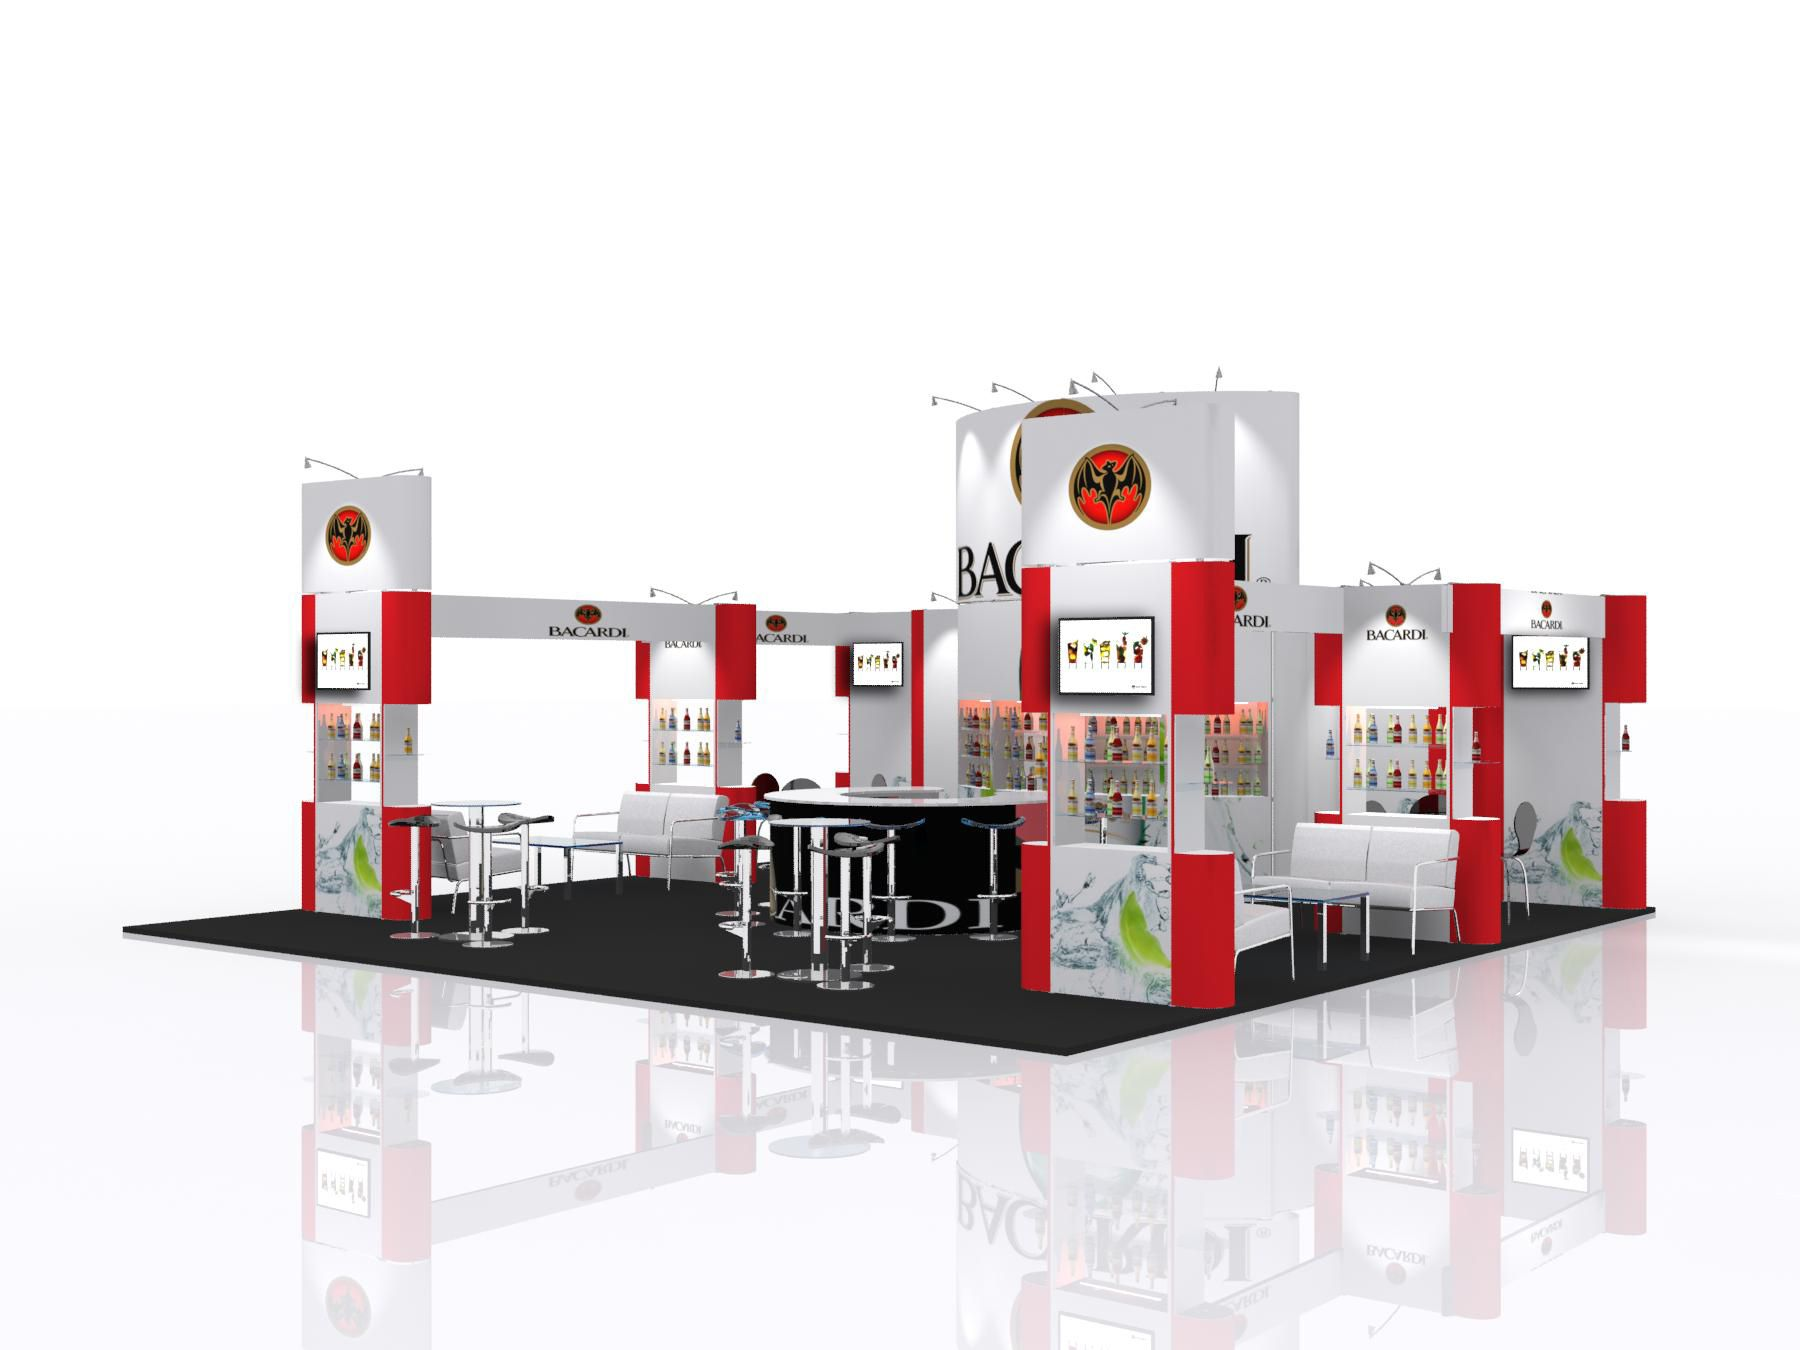 Exhibition Stand Information : Modular exhibition stand design for bacardi more